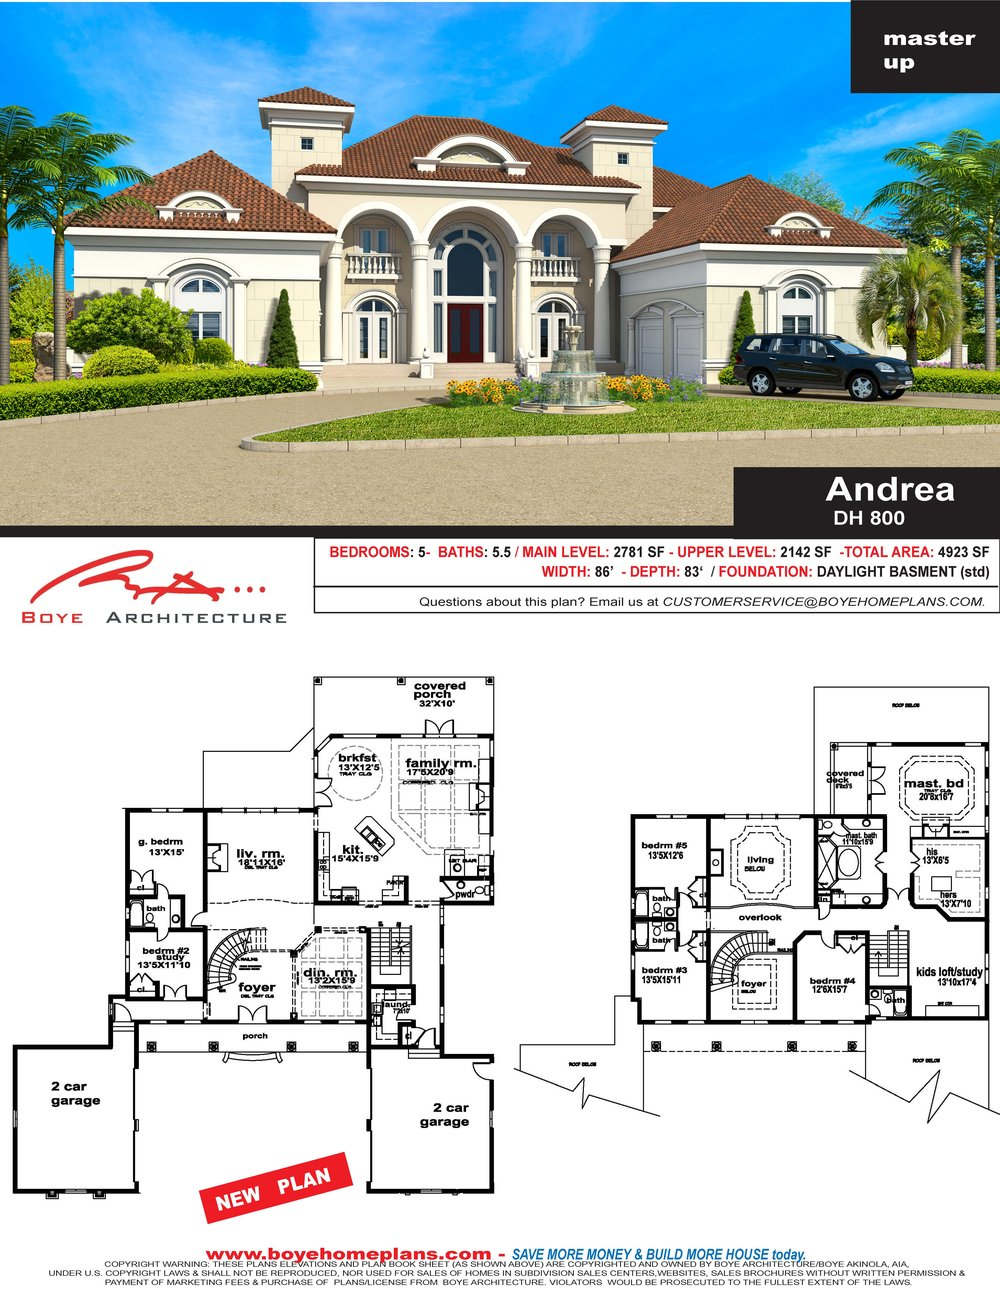 ANDREA PLAN PAGE-DH 800-082317.jpg